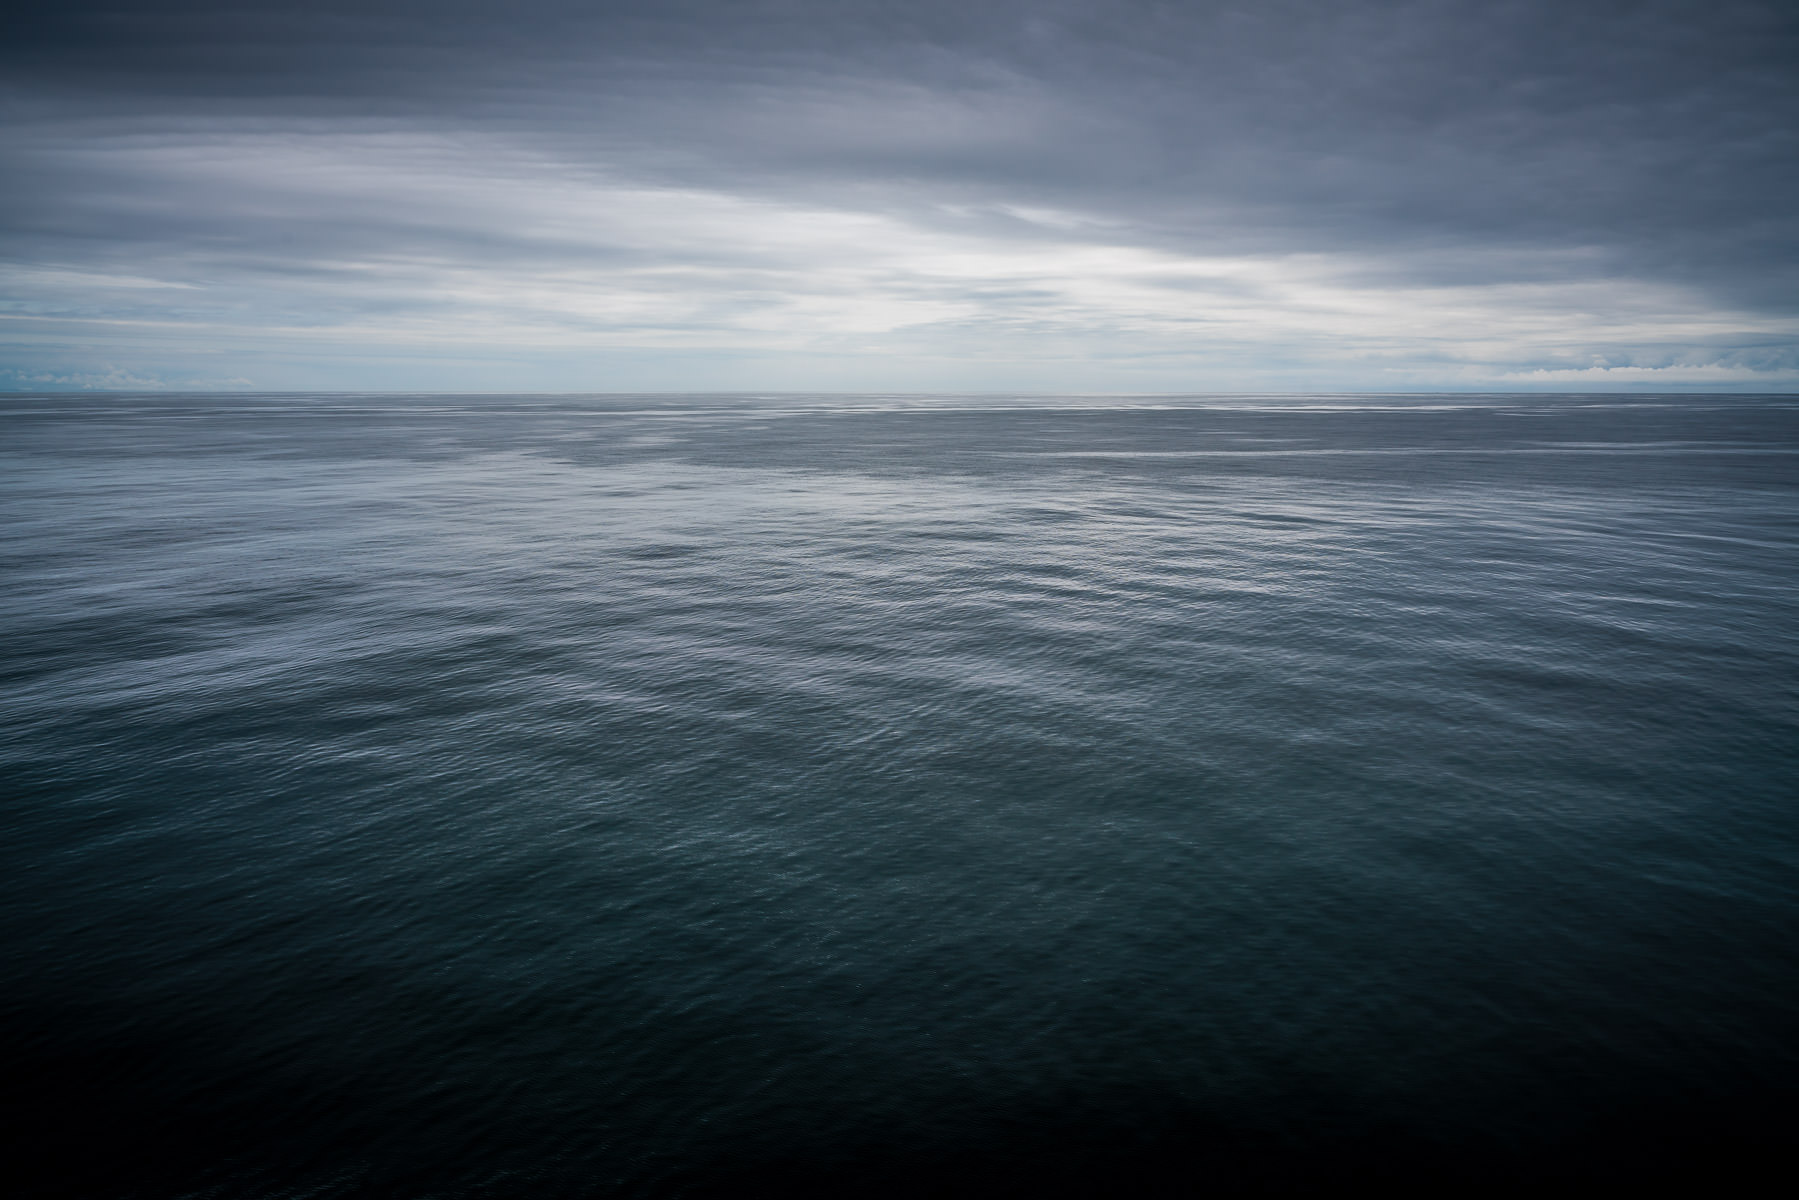 The peaceful seascape of the Strait of Juan de Fuca, northwest of Seattle.